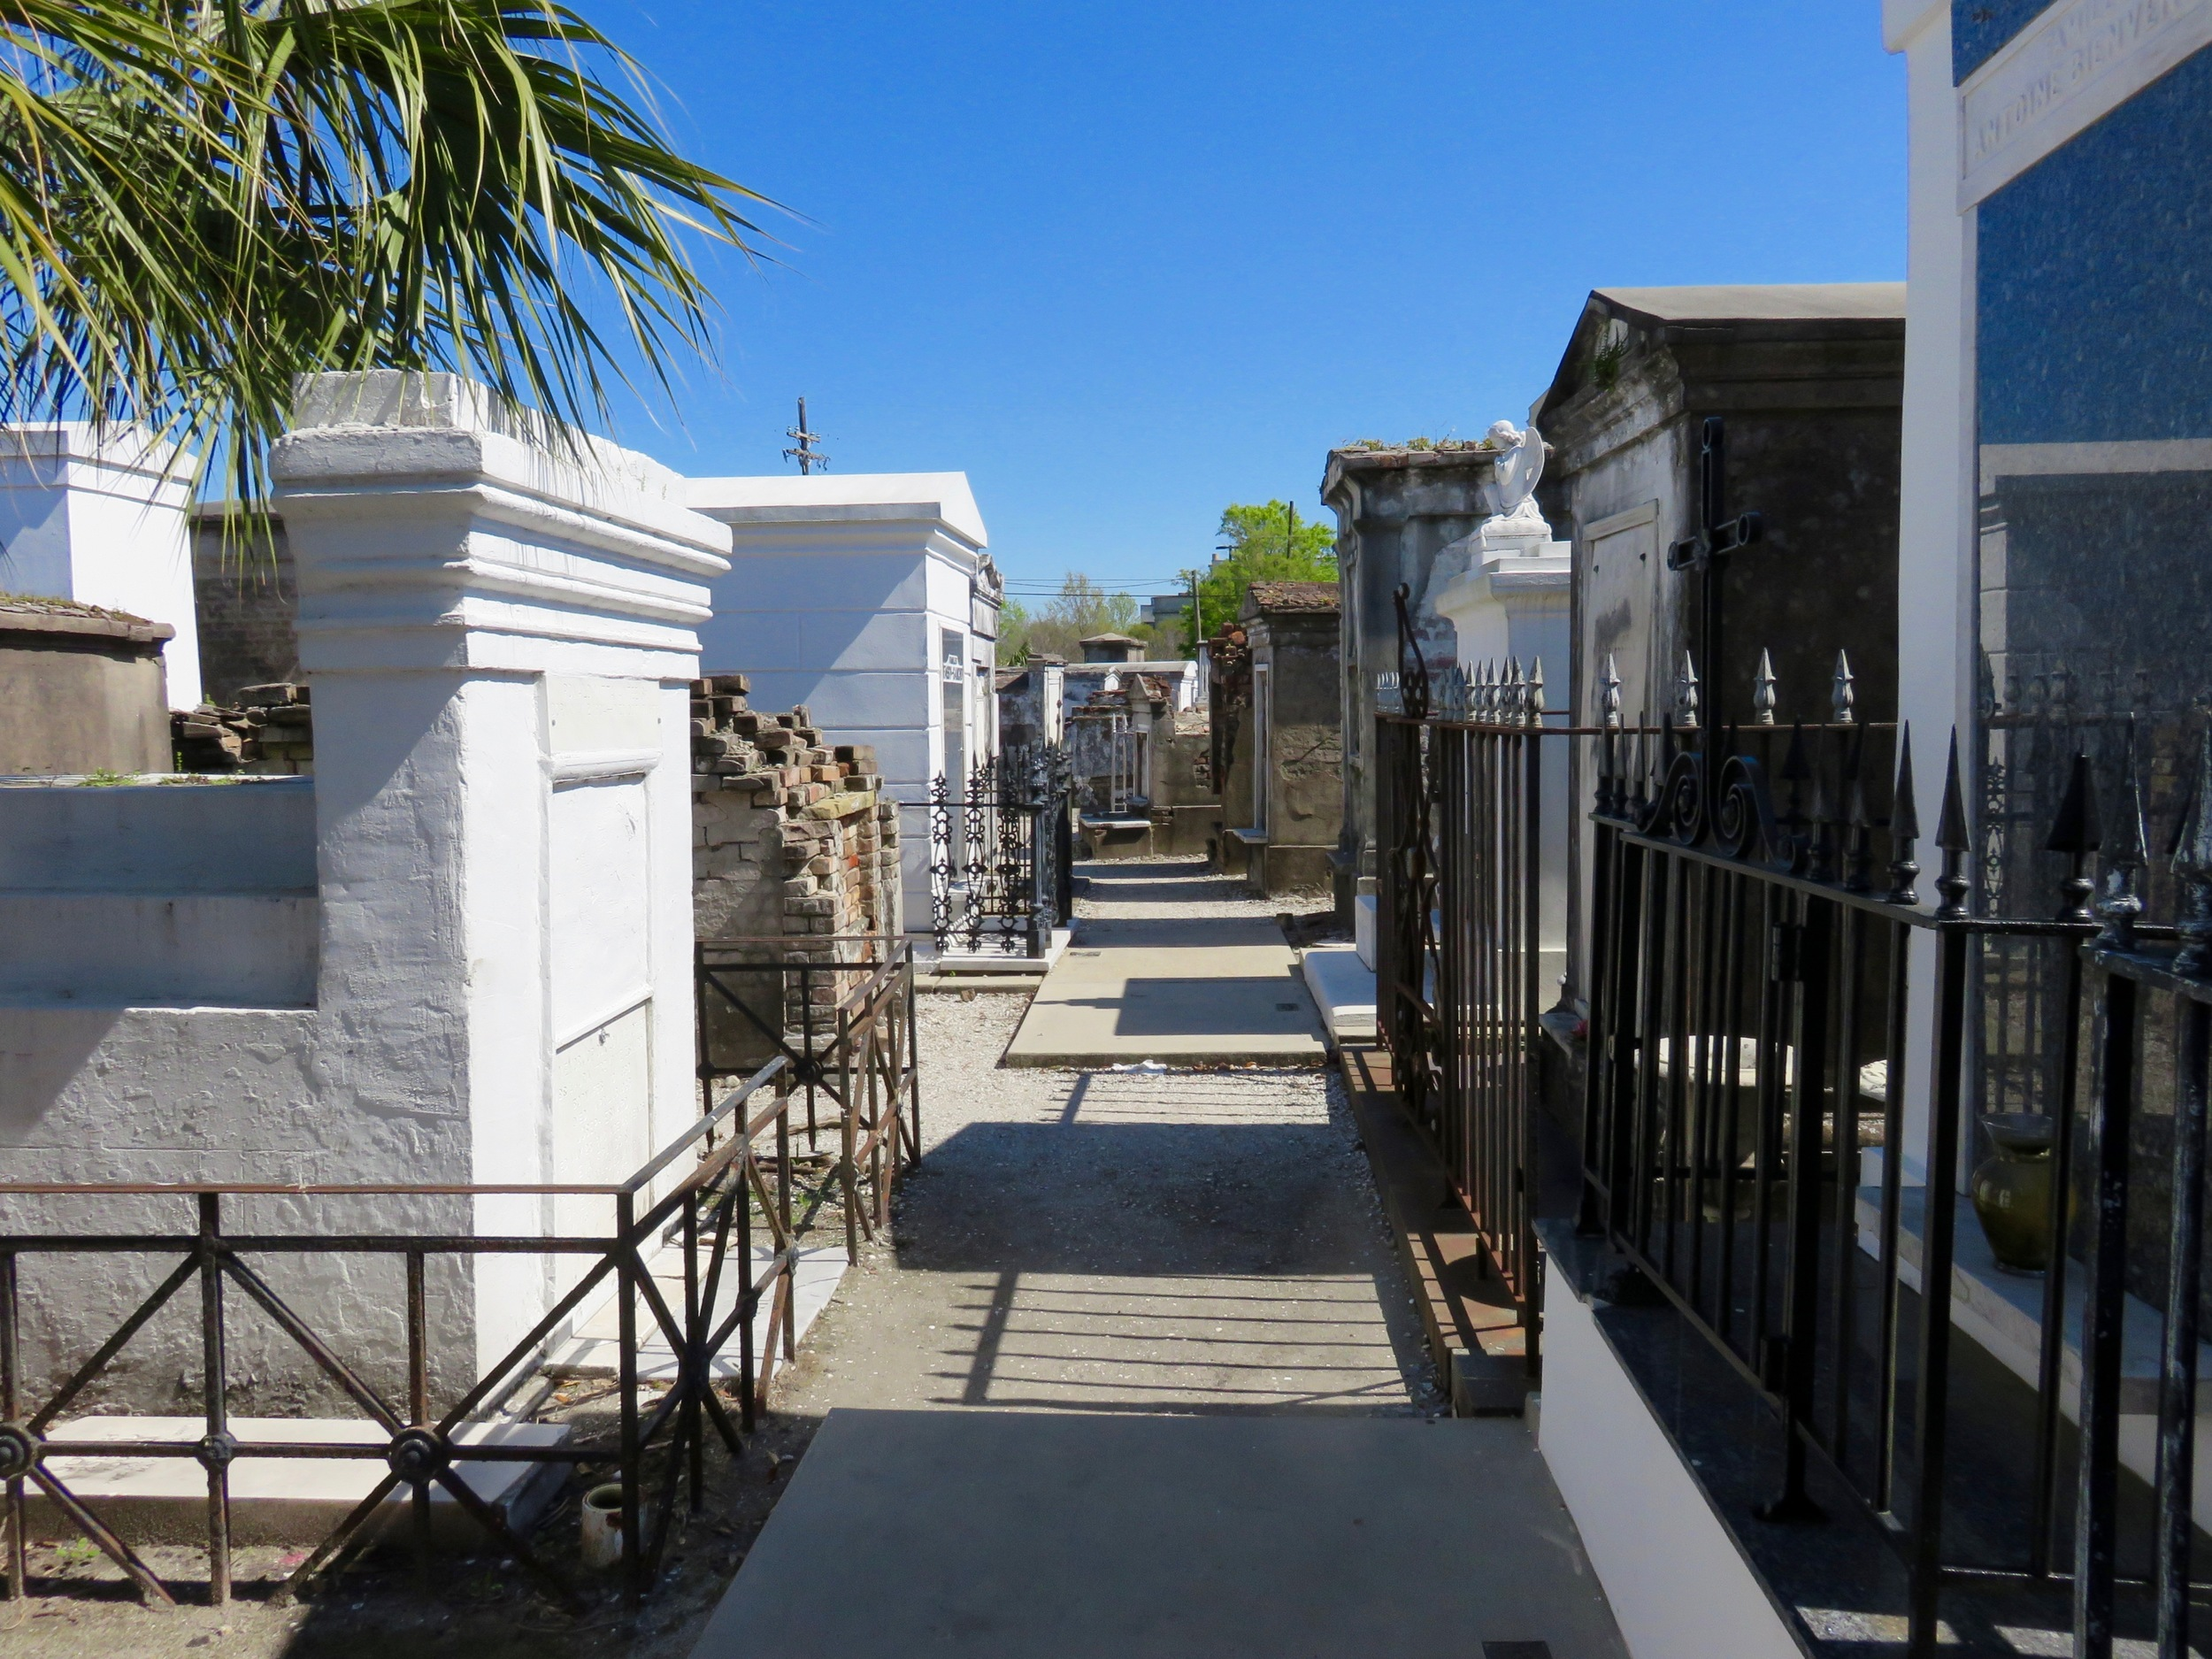 Variety of above ground graves at St. Louis Cemetery.